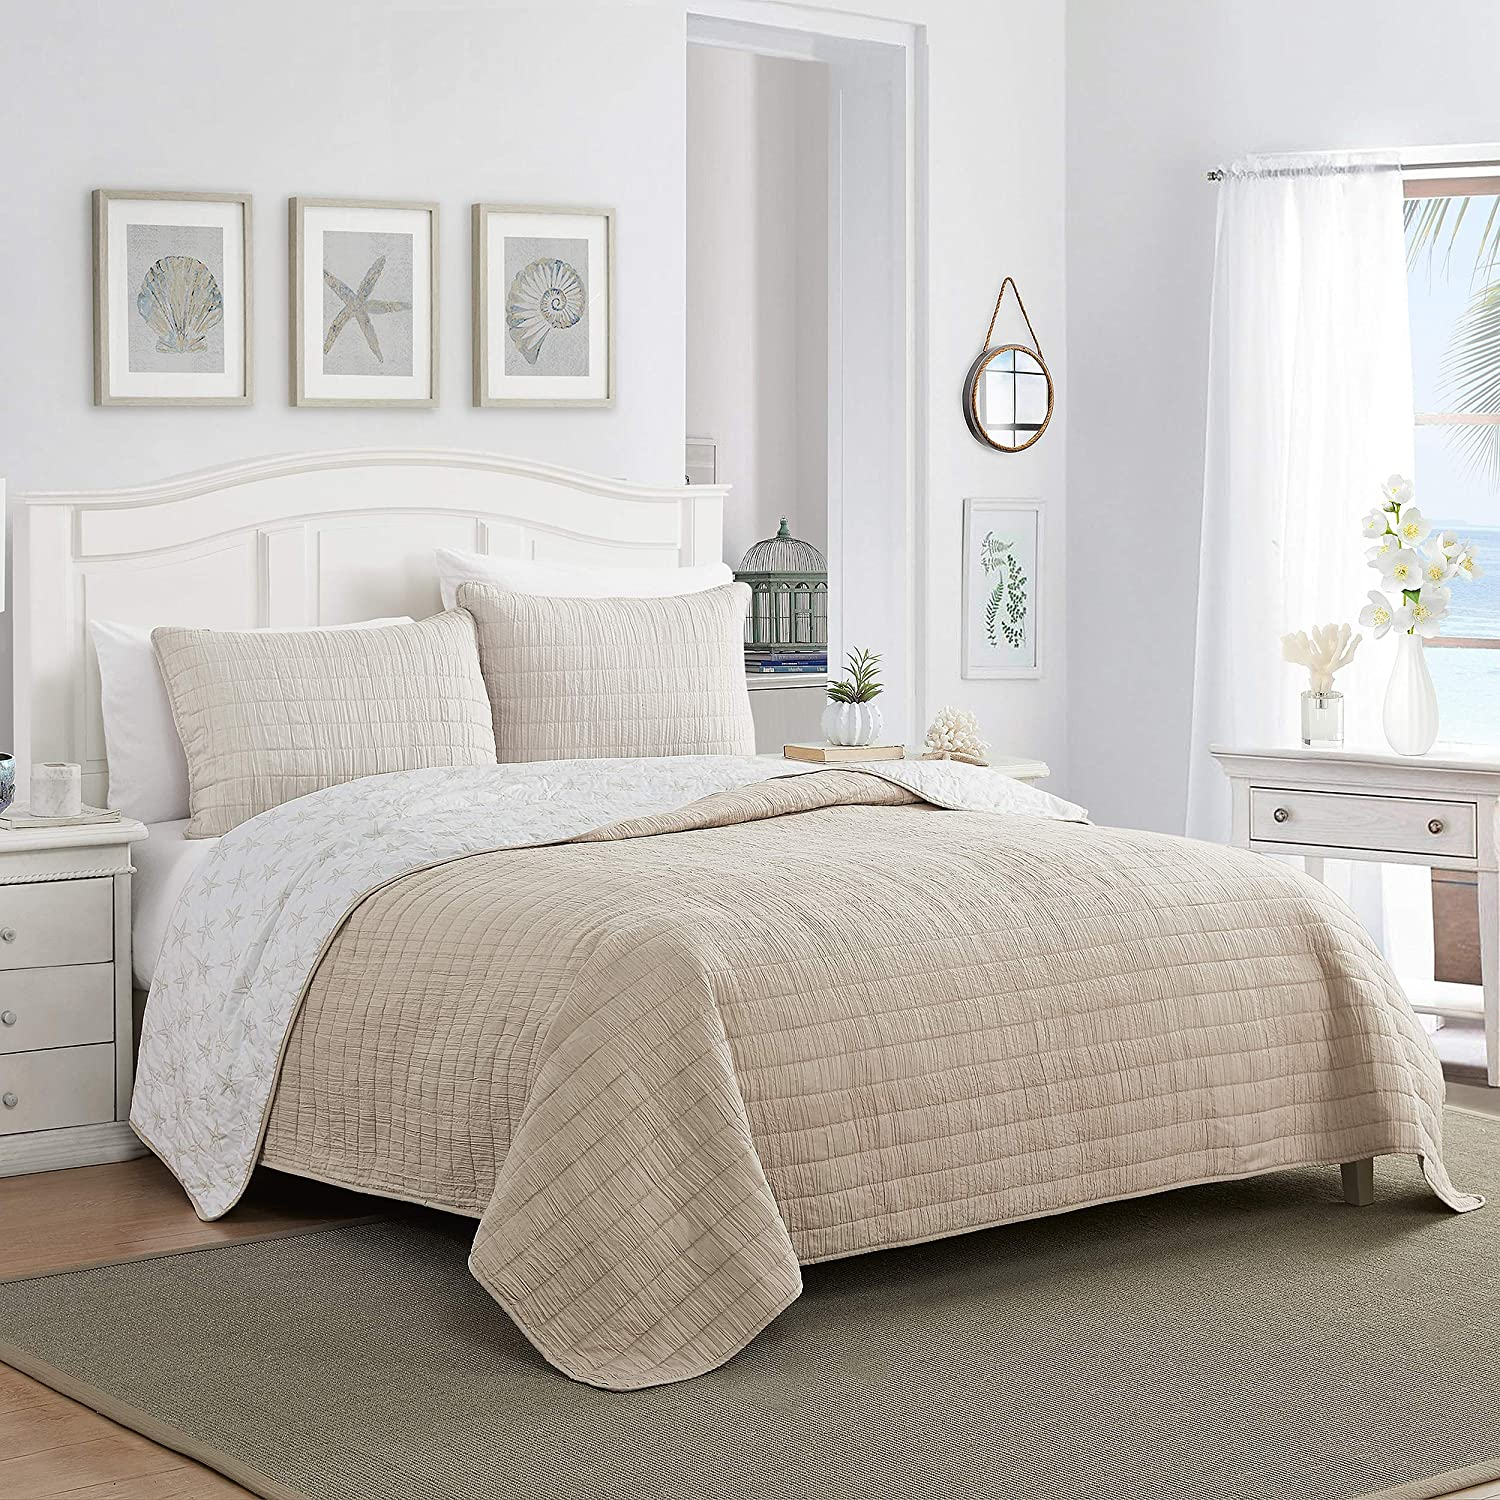 Elegant Comfort Luxury All Season Ultra Soft Enzyme Washed Reversible 1-Piece Quilt Coastal Pattern Crinkle Coverlet Bedspread, King/California King, Taupe/White Starfish